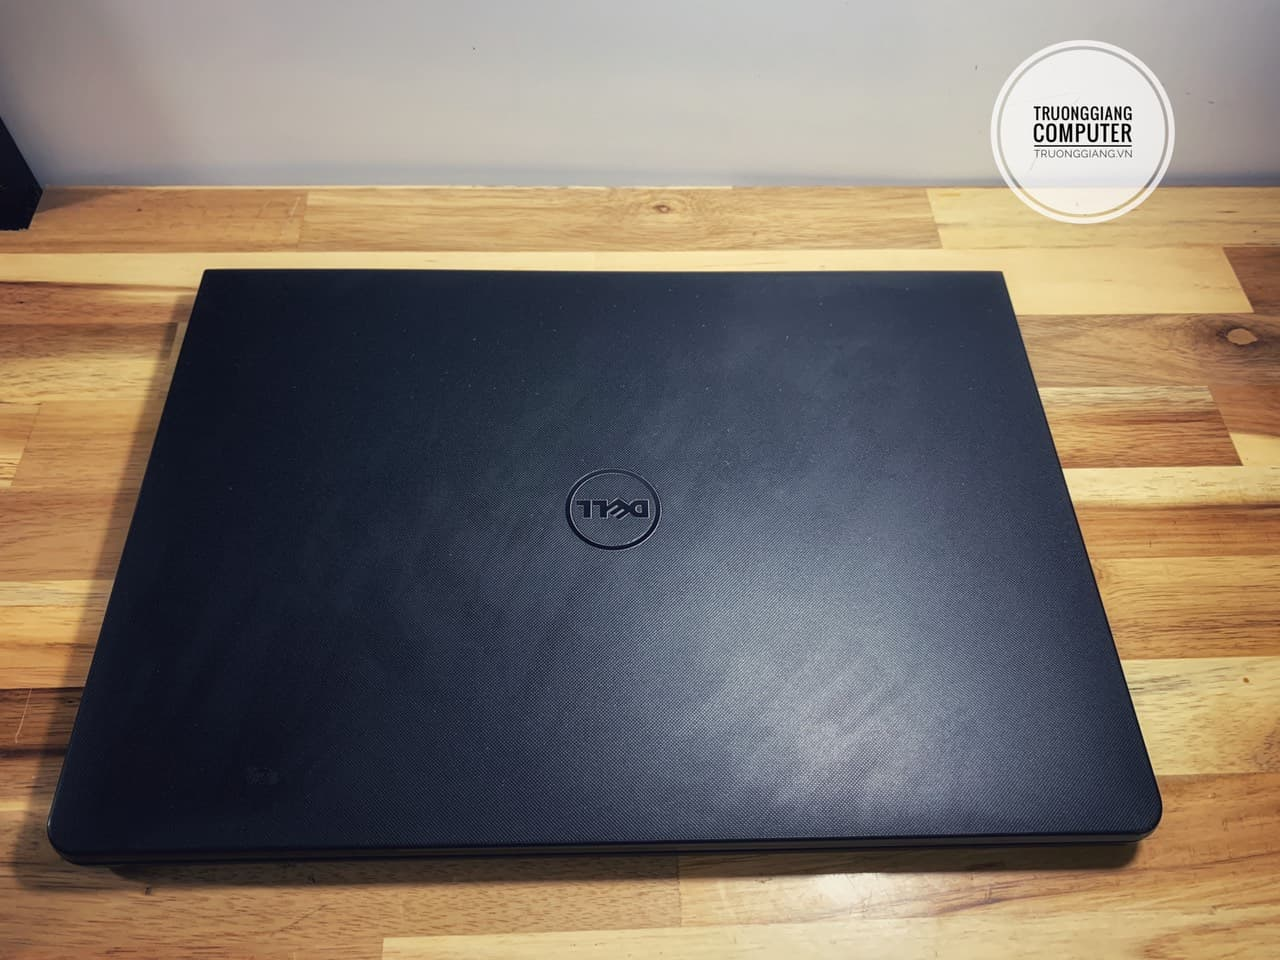 Laptop Dell inspiron 3458 cũ